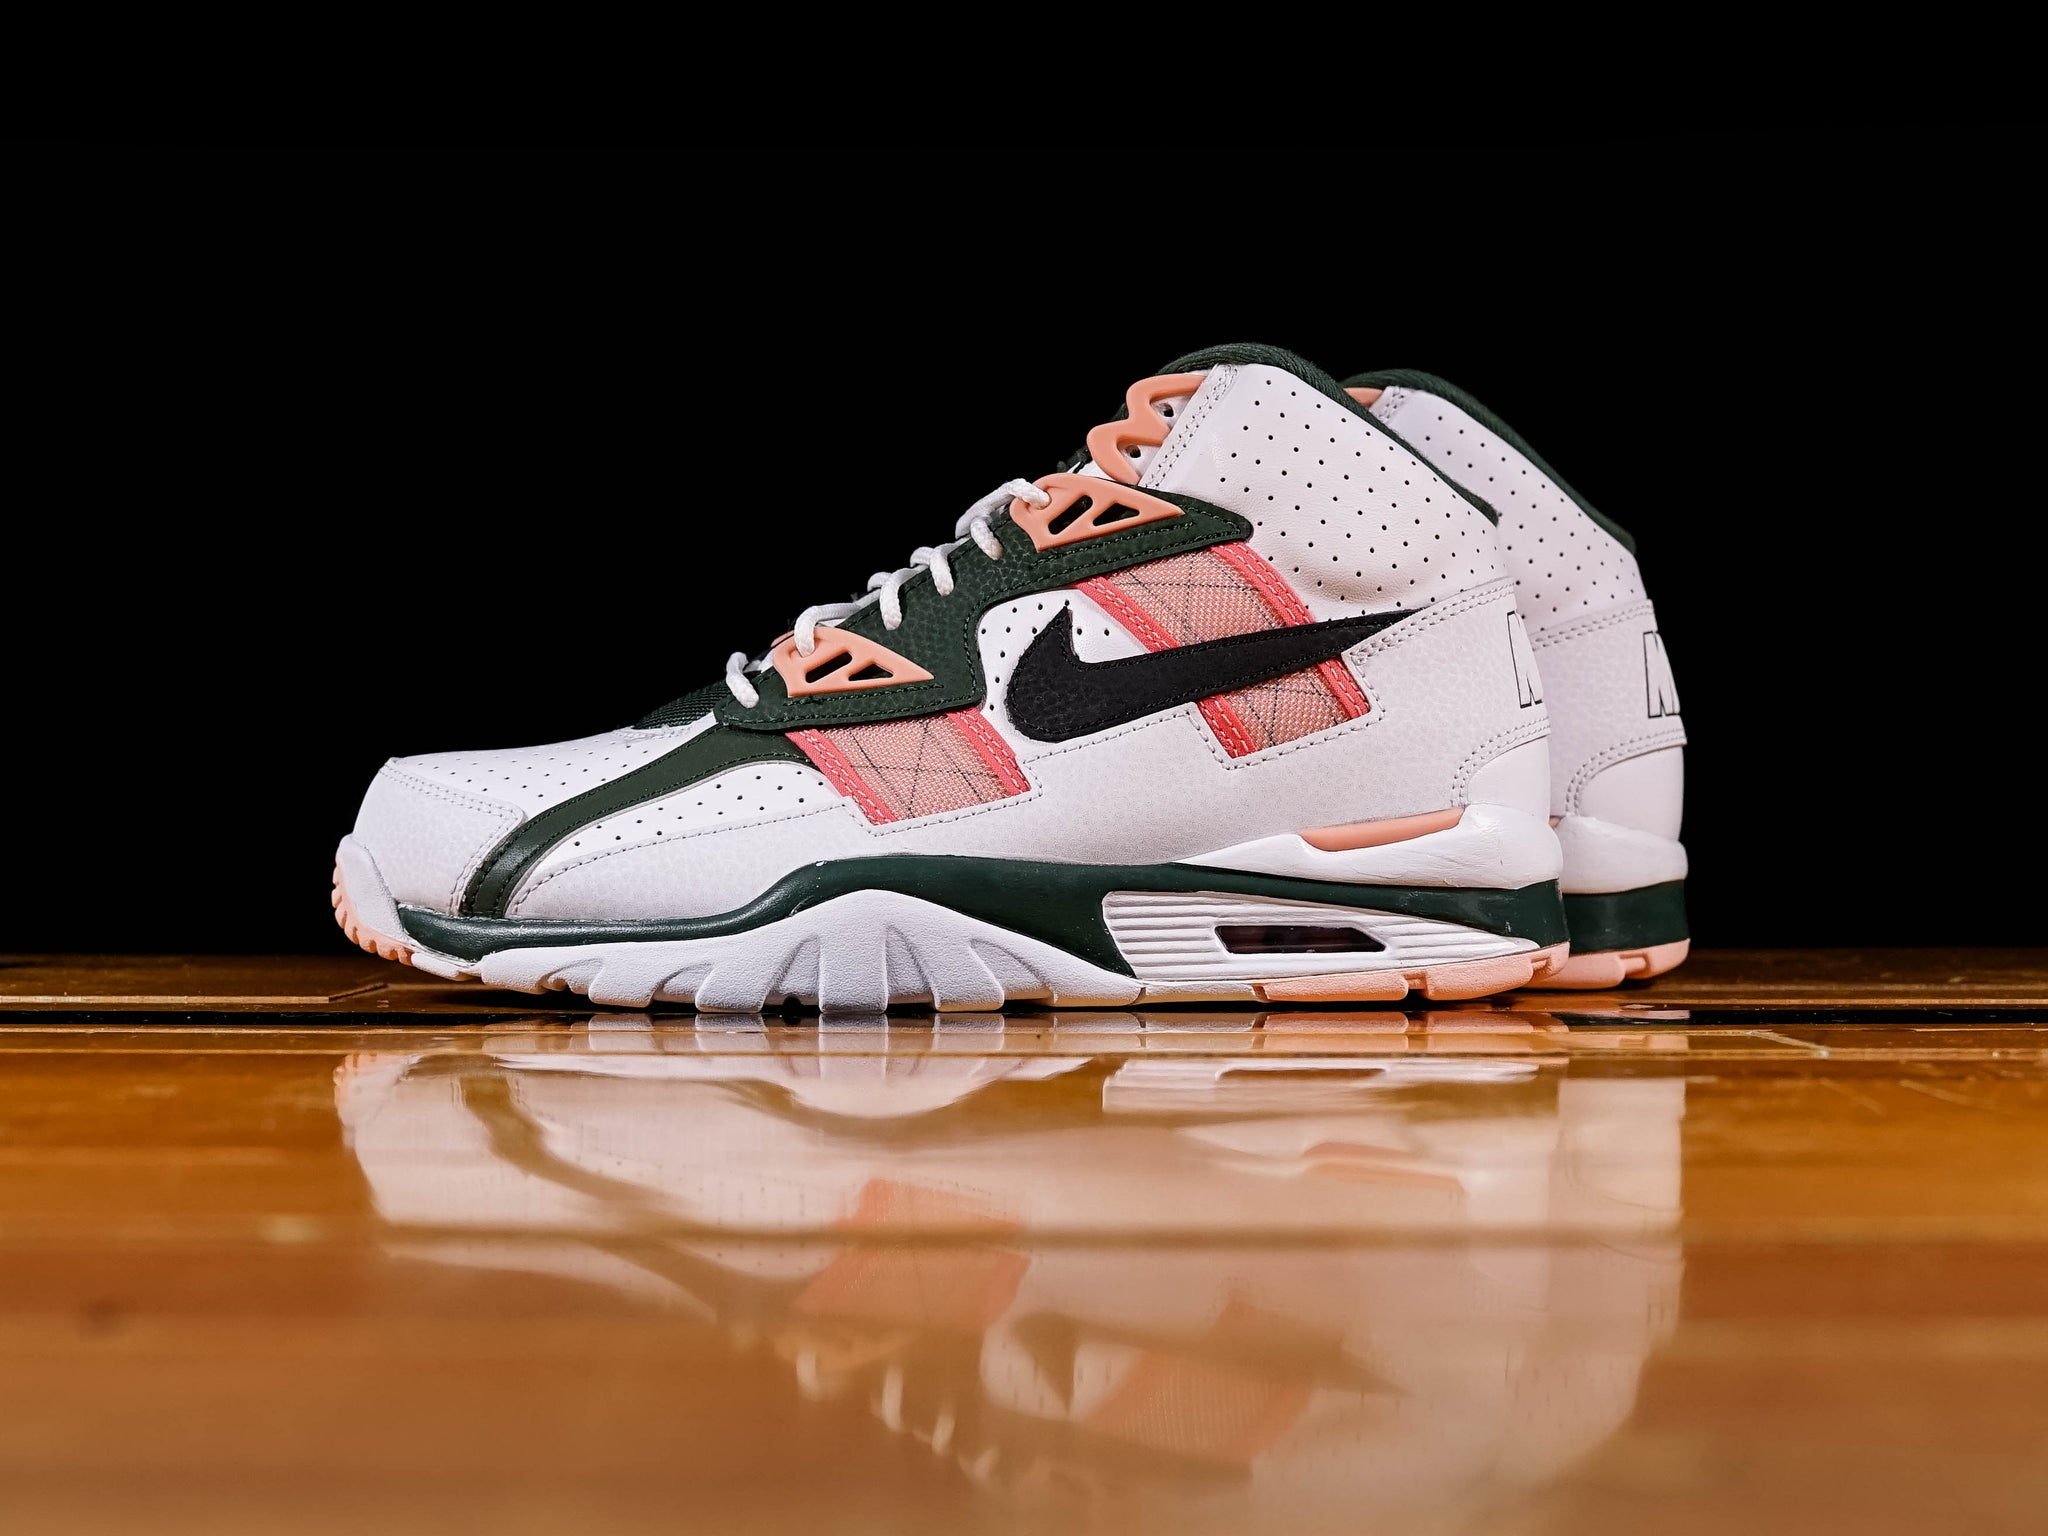 Nike Air Trainer SC Pink Green CU6672 100 Release Info